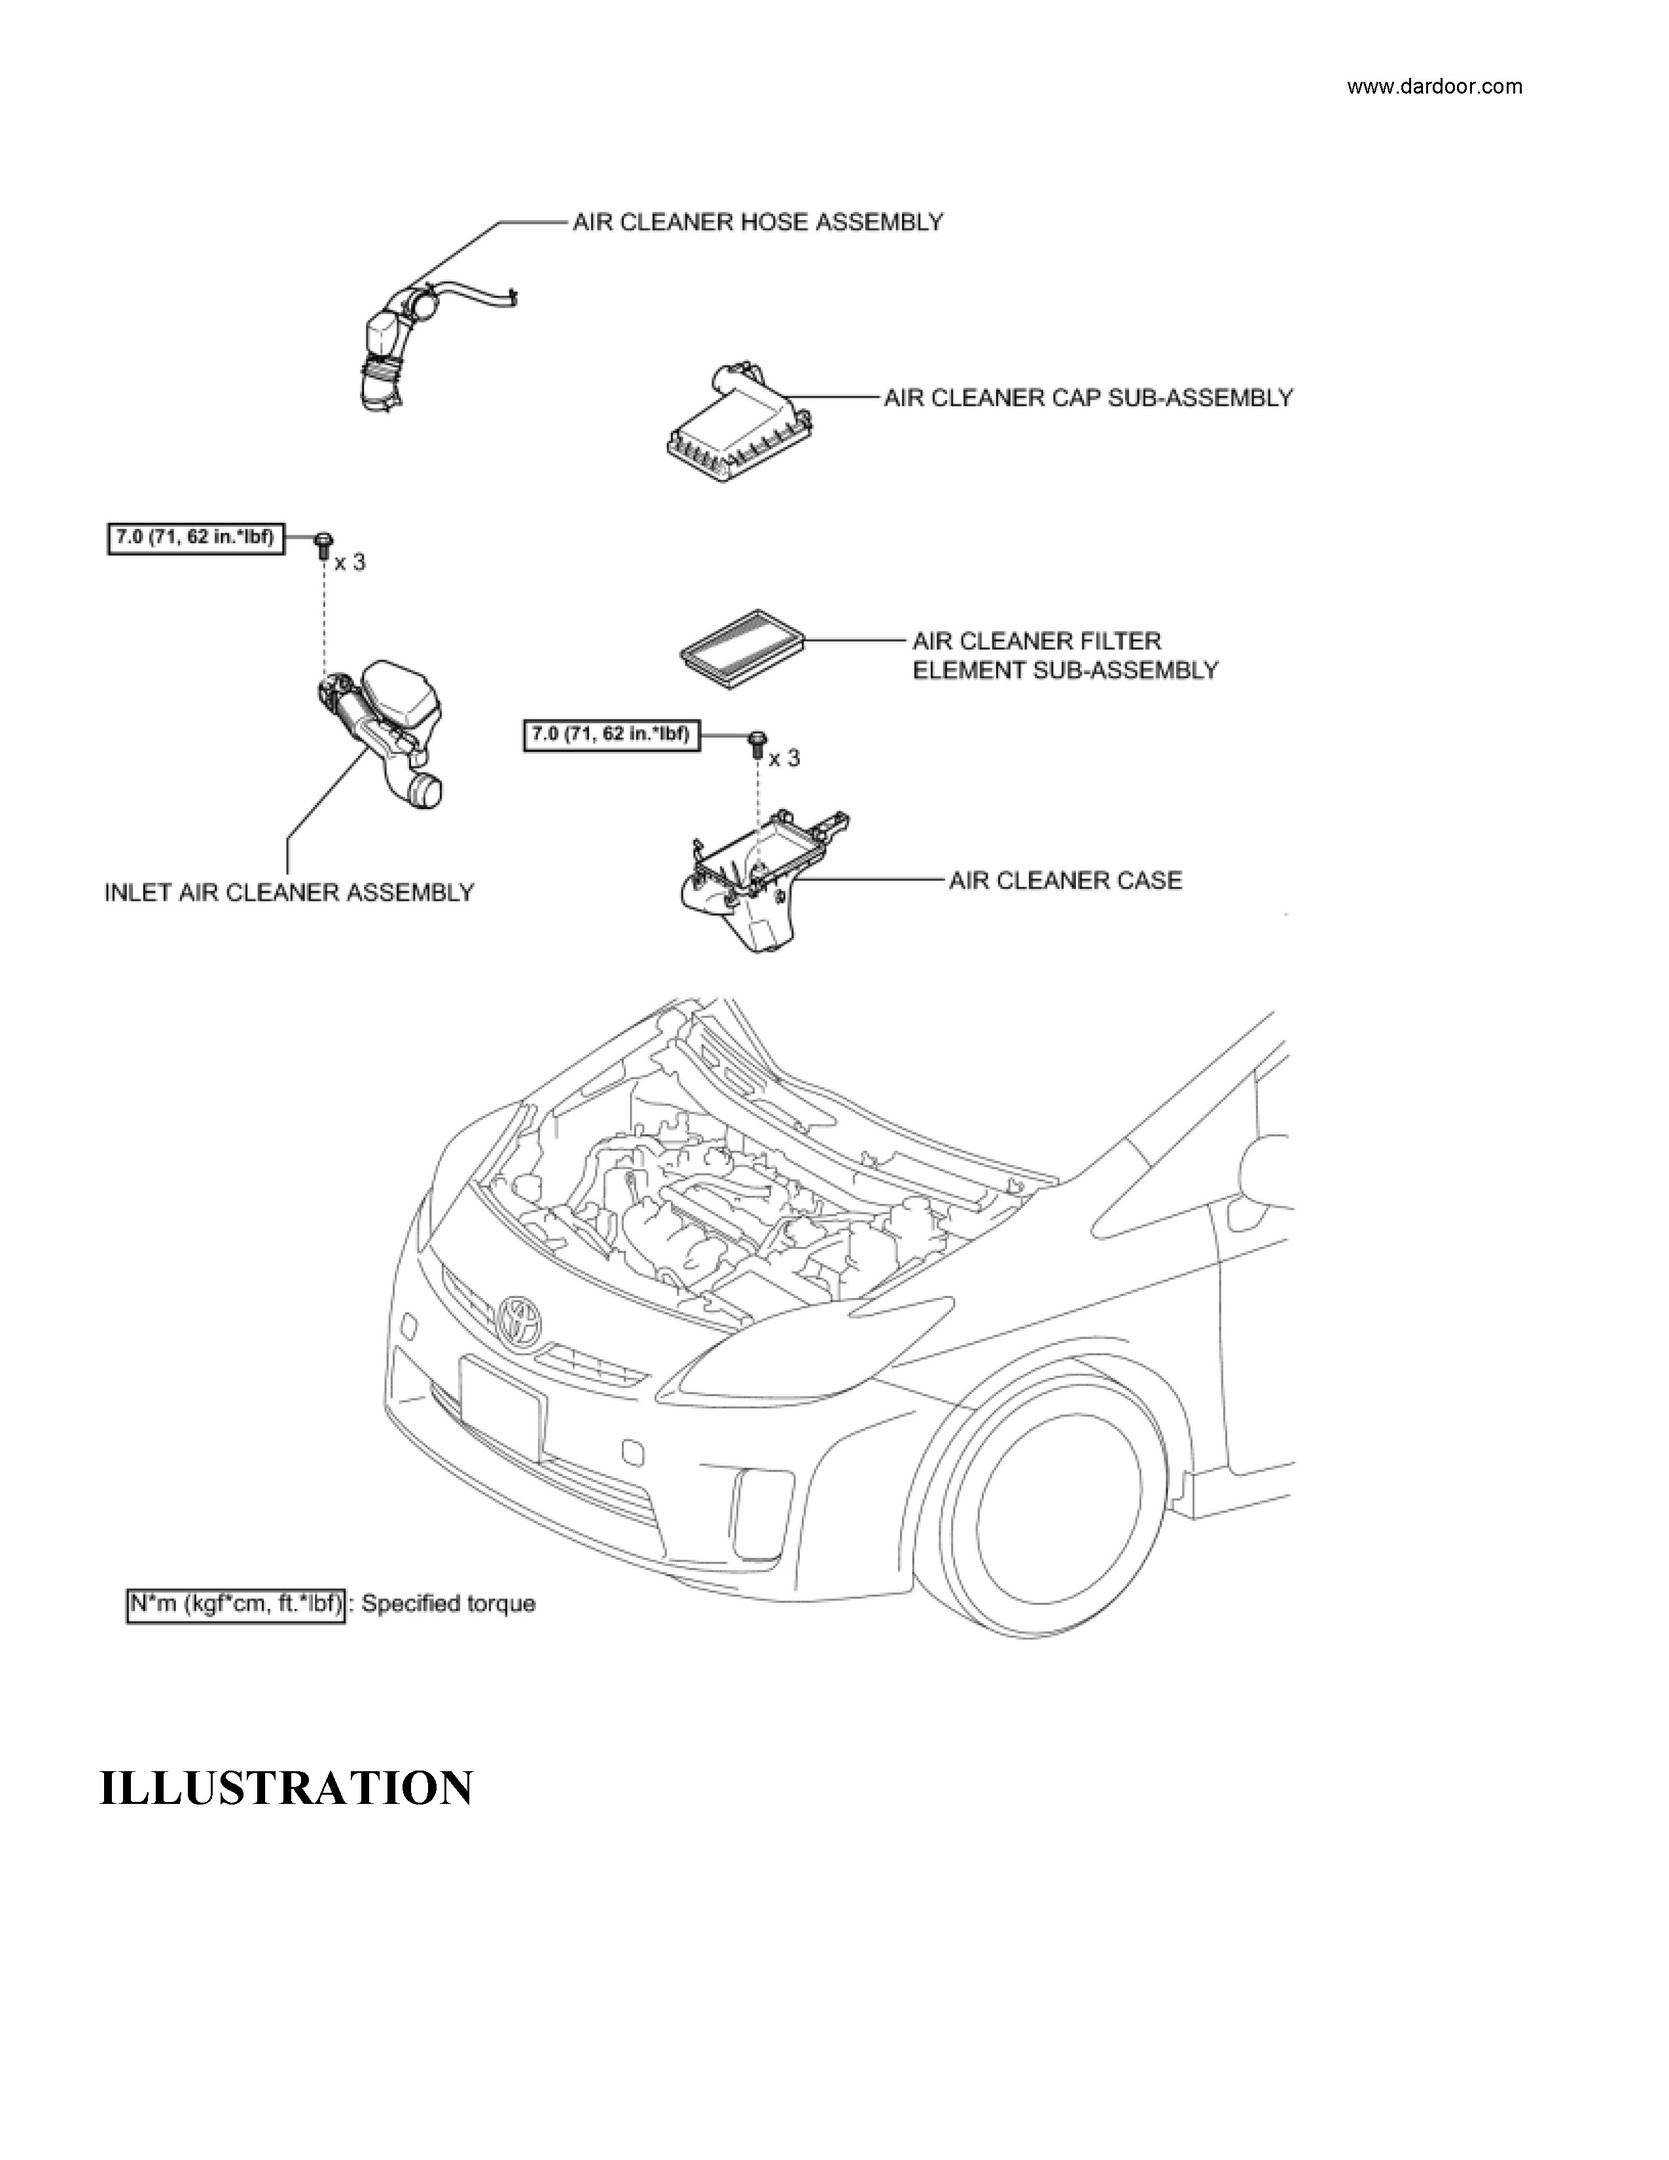 2010 Toyota Prius, OEM service and Repair Manual (PDF